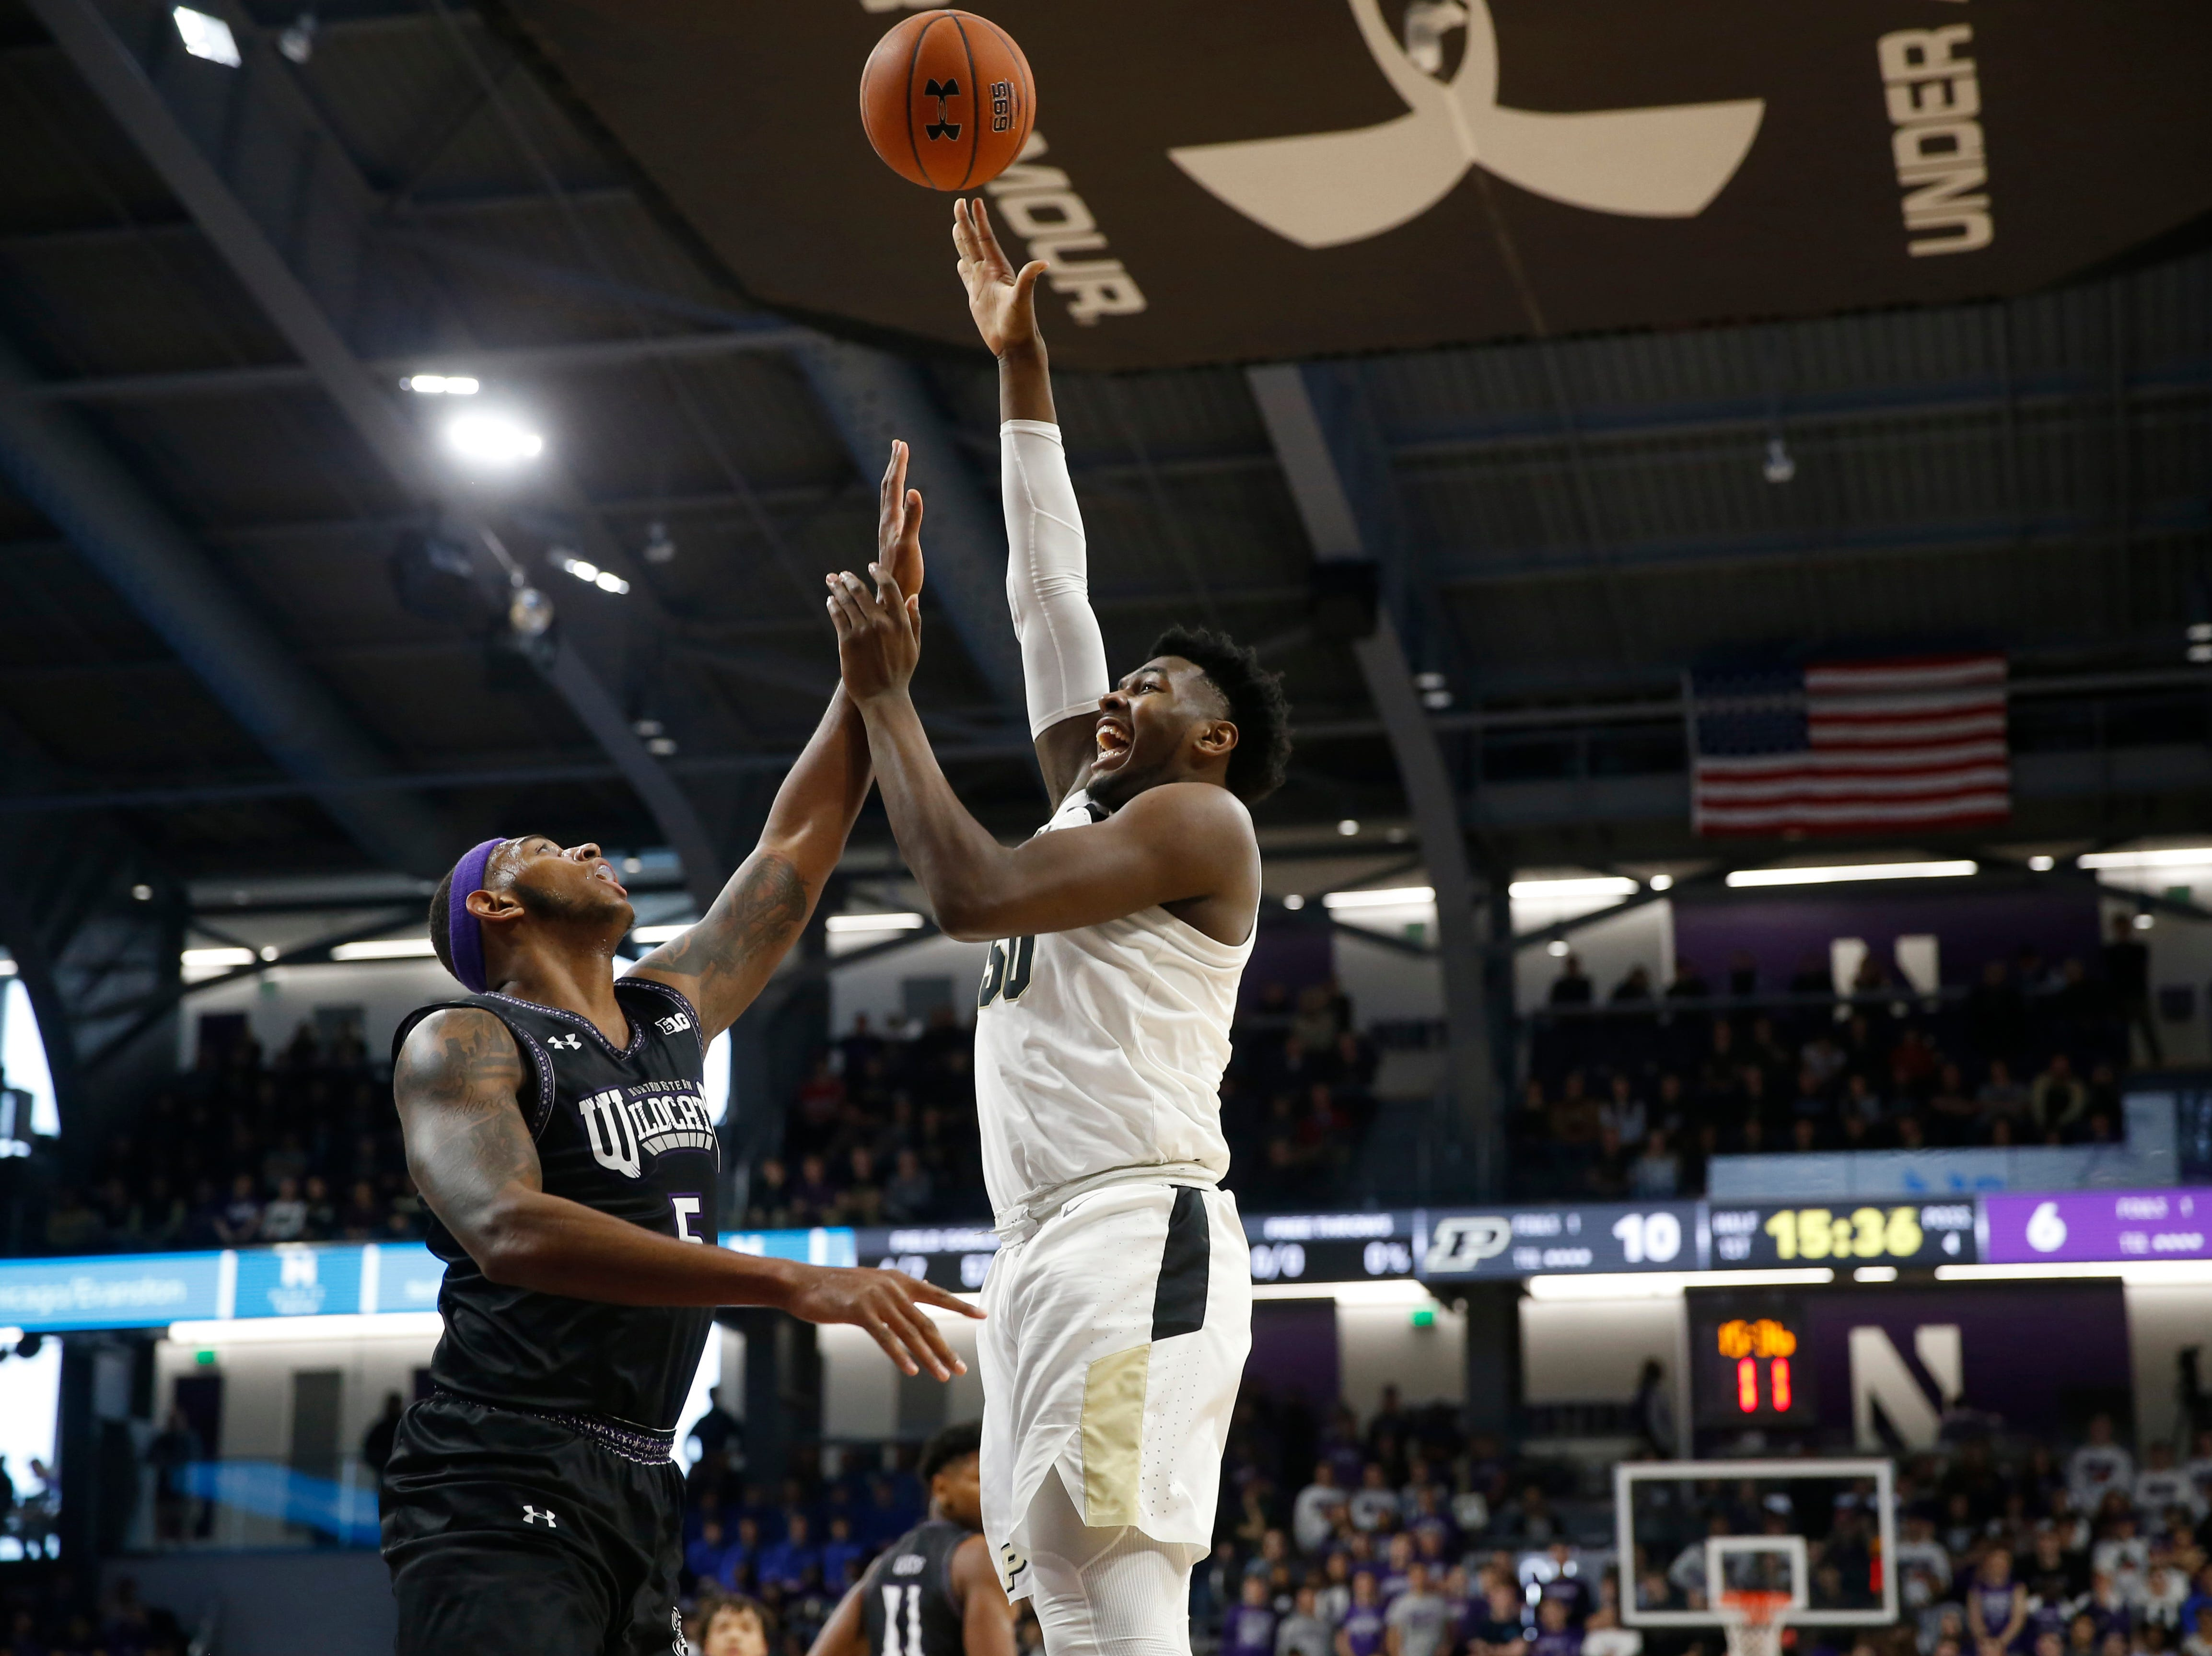 Mar 9, 2019; Evanston, IL, USA; Purdue Boilermakers forward Trevion Williams (50) shoots over Northwestern Wildcats center Dererk Pardon (5) during the first half at Welsh-Ryan Arena. Mandatory Credit: Nuccio DiNuzzo-USA TODAY Sports